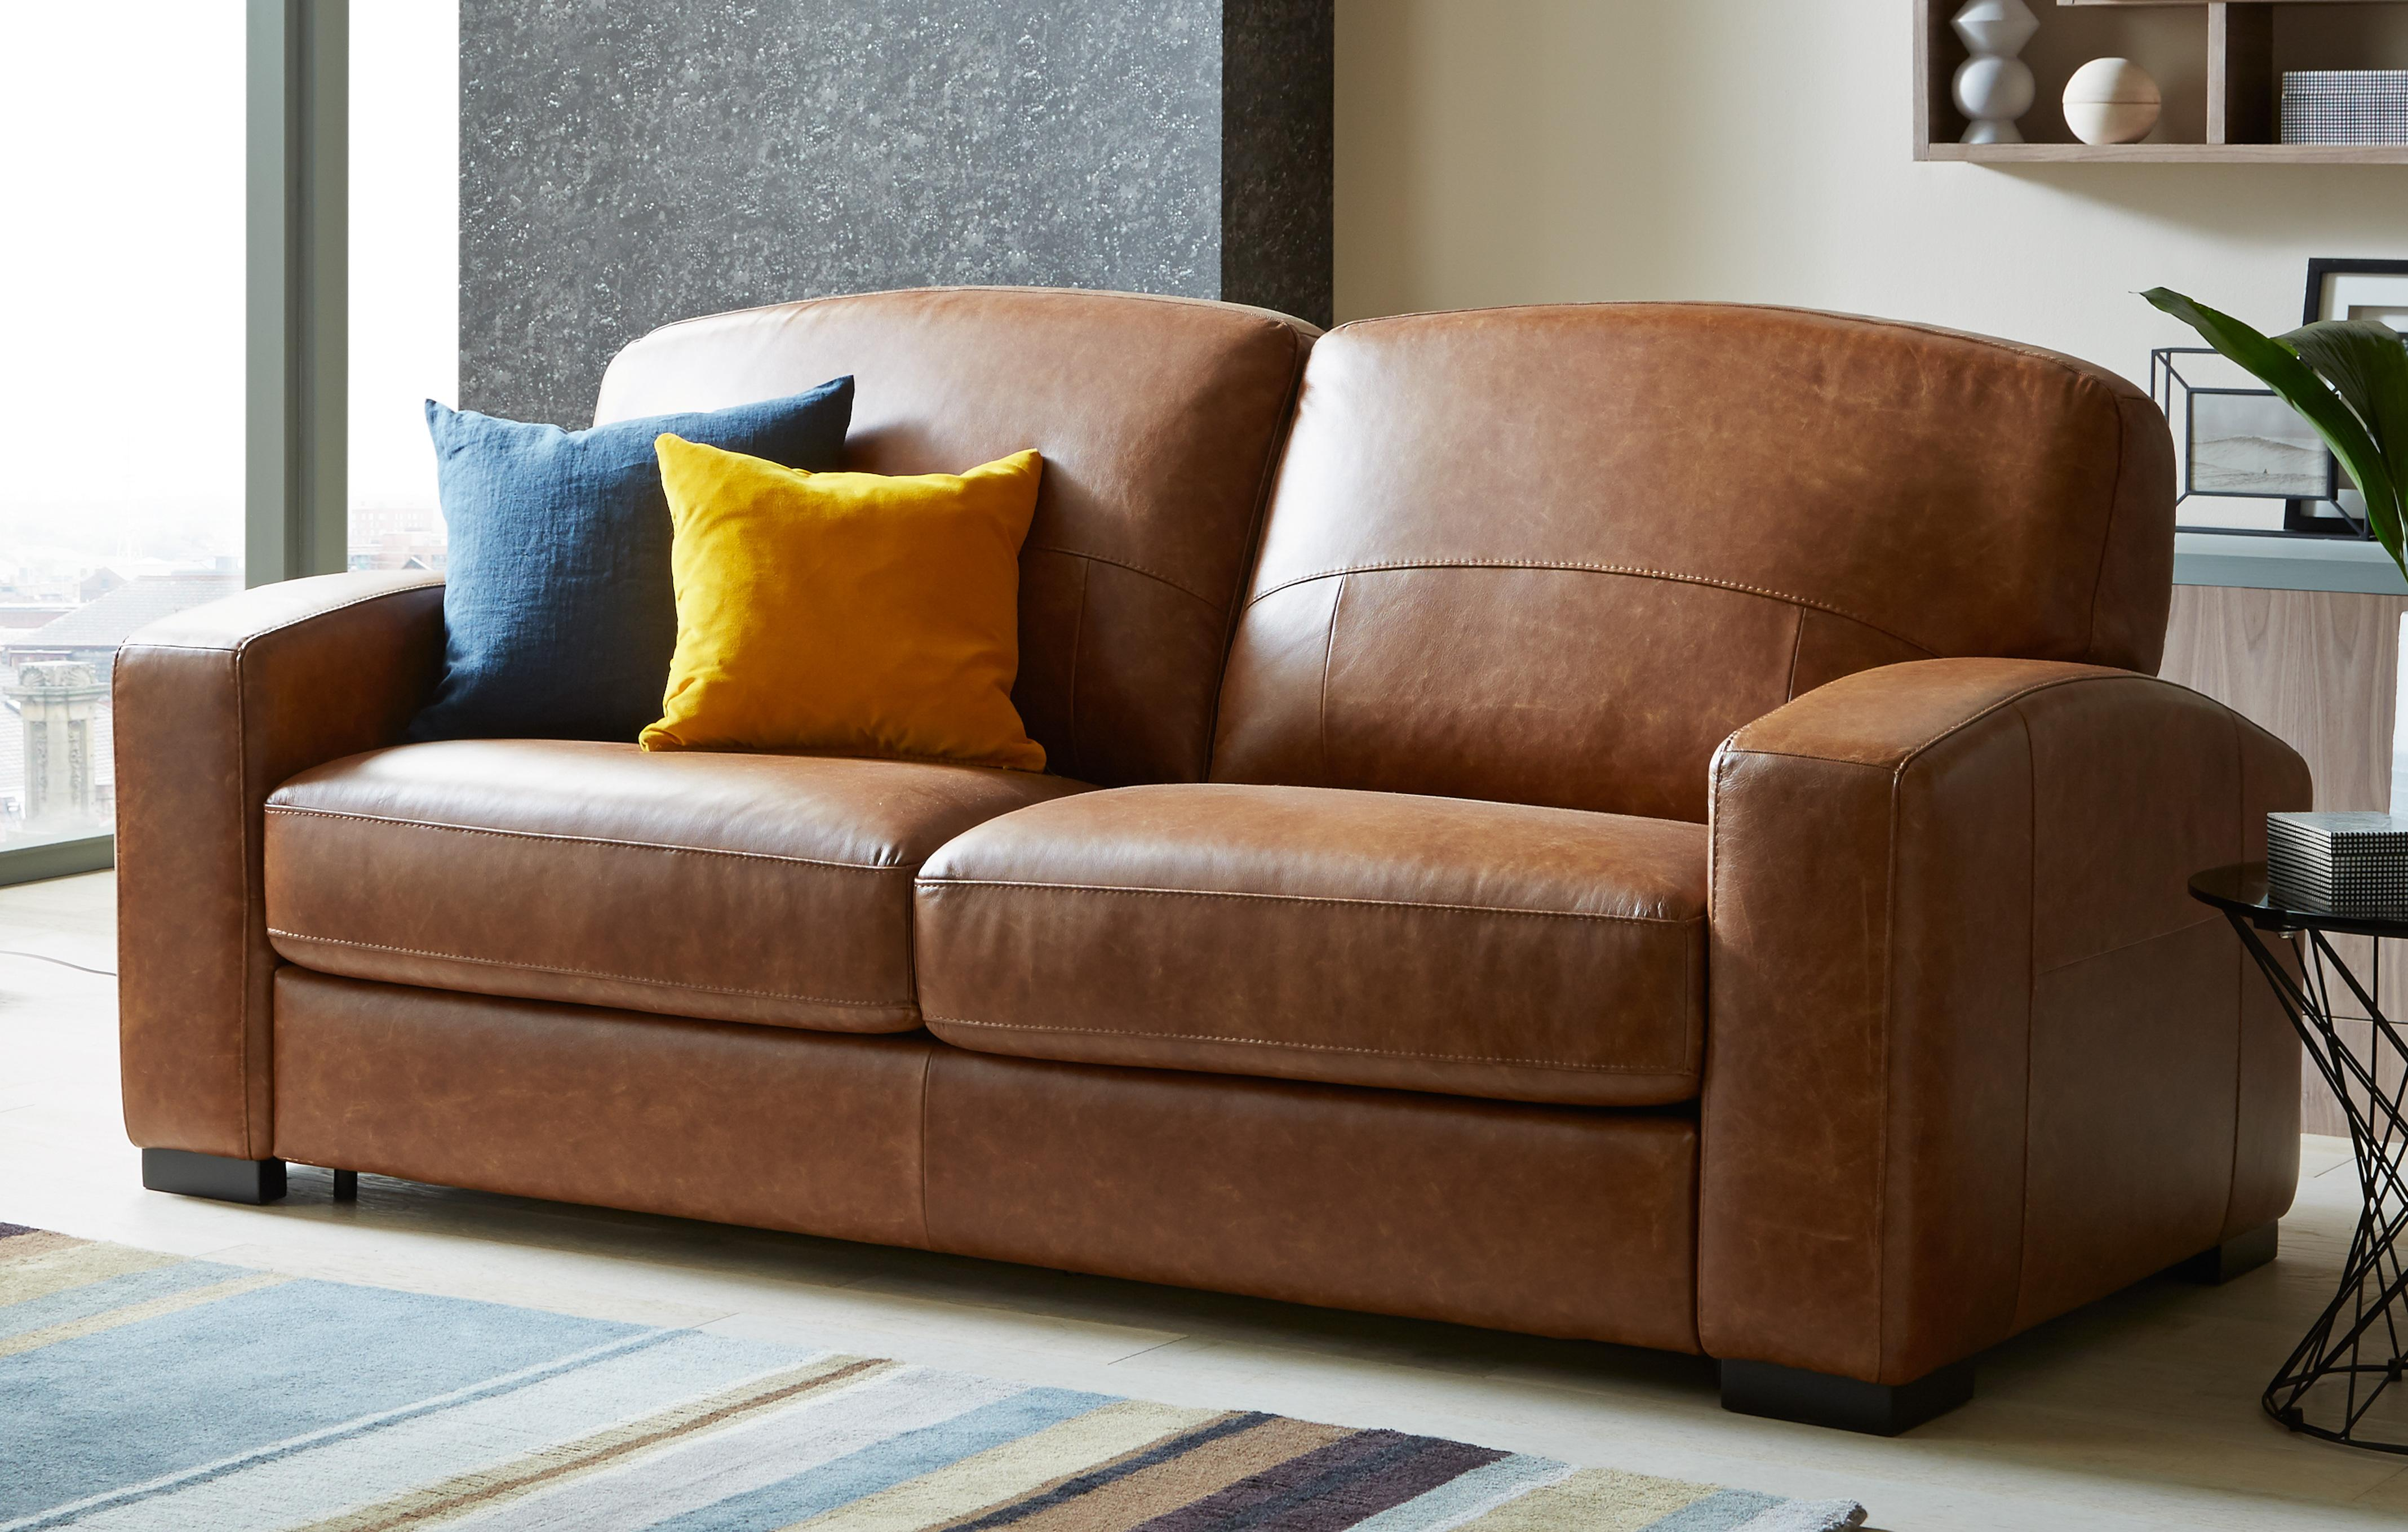 Home Interiors Gifts Inc Website Leather Sofa Beds Glasgow Brokeasshome Com